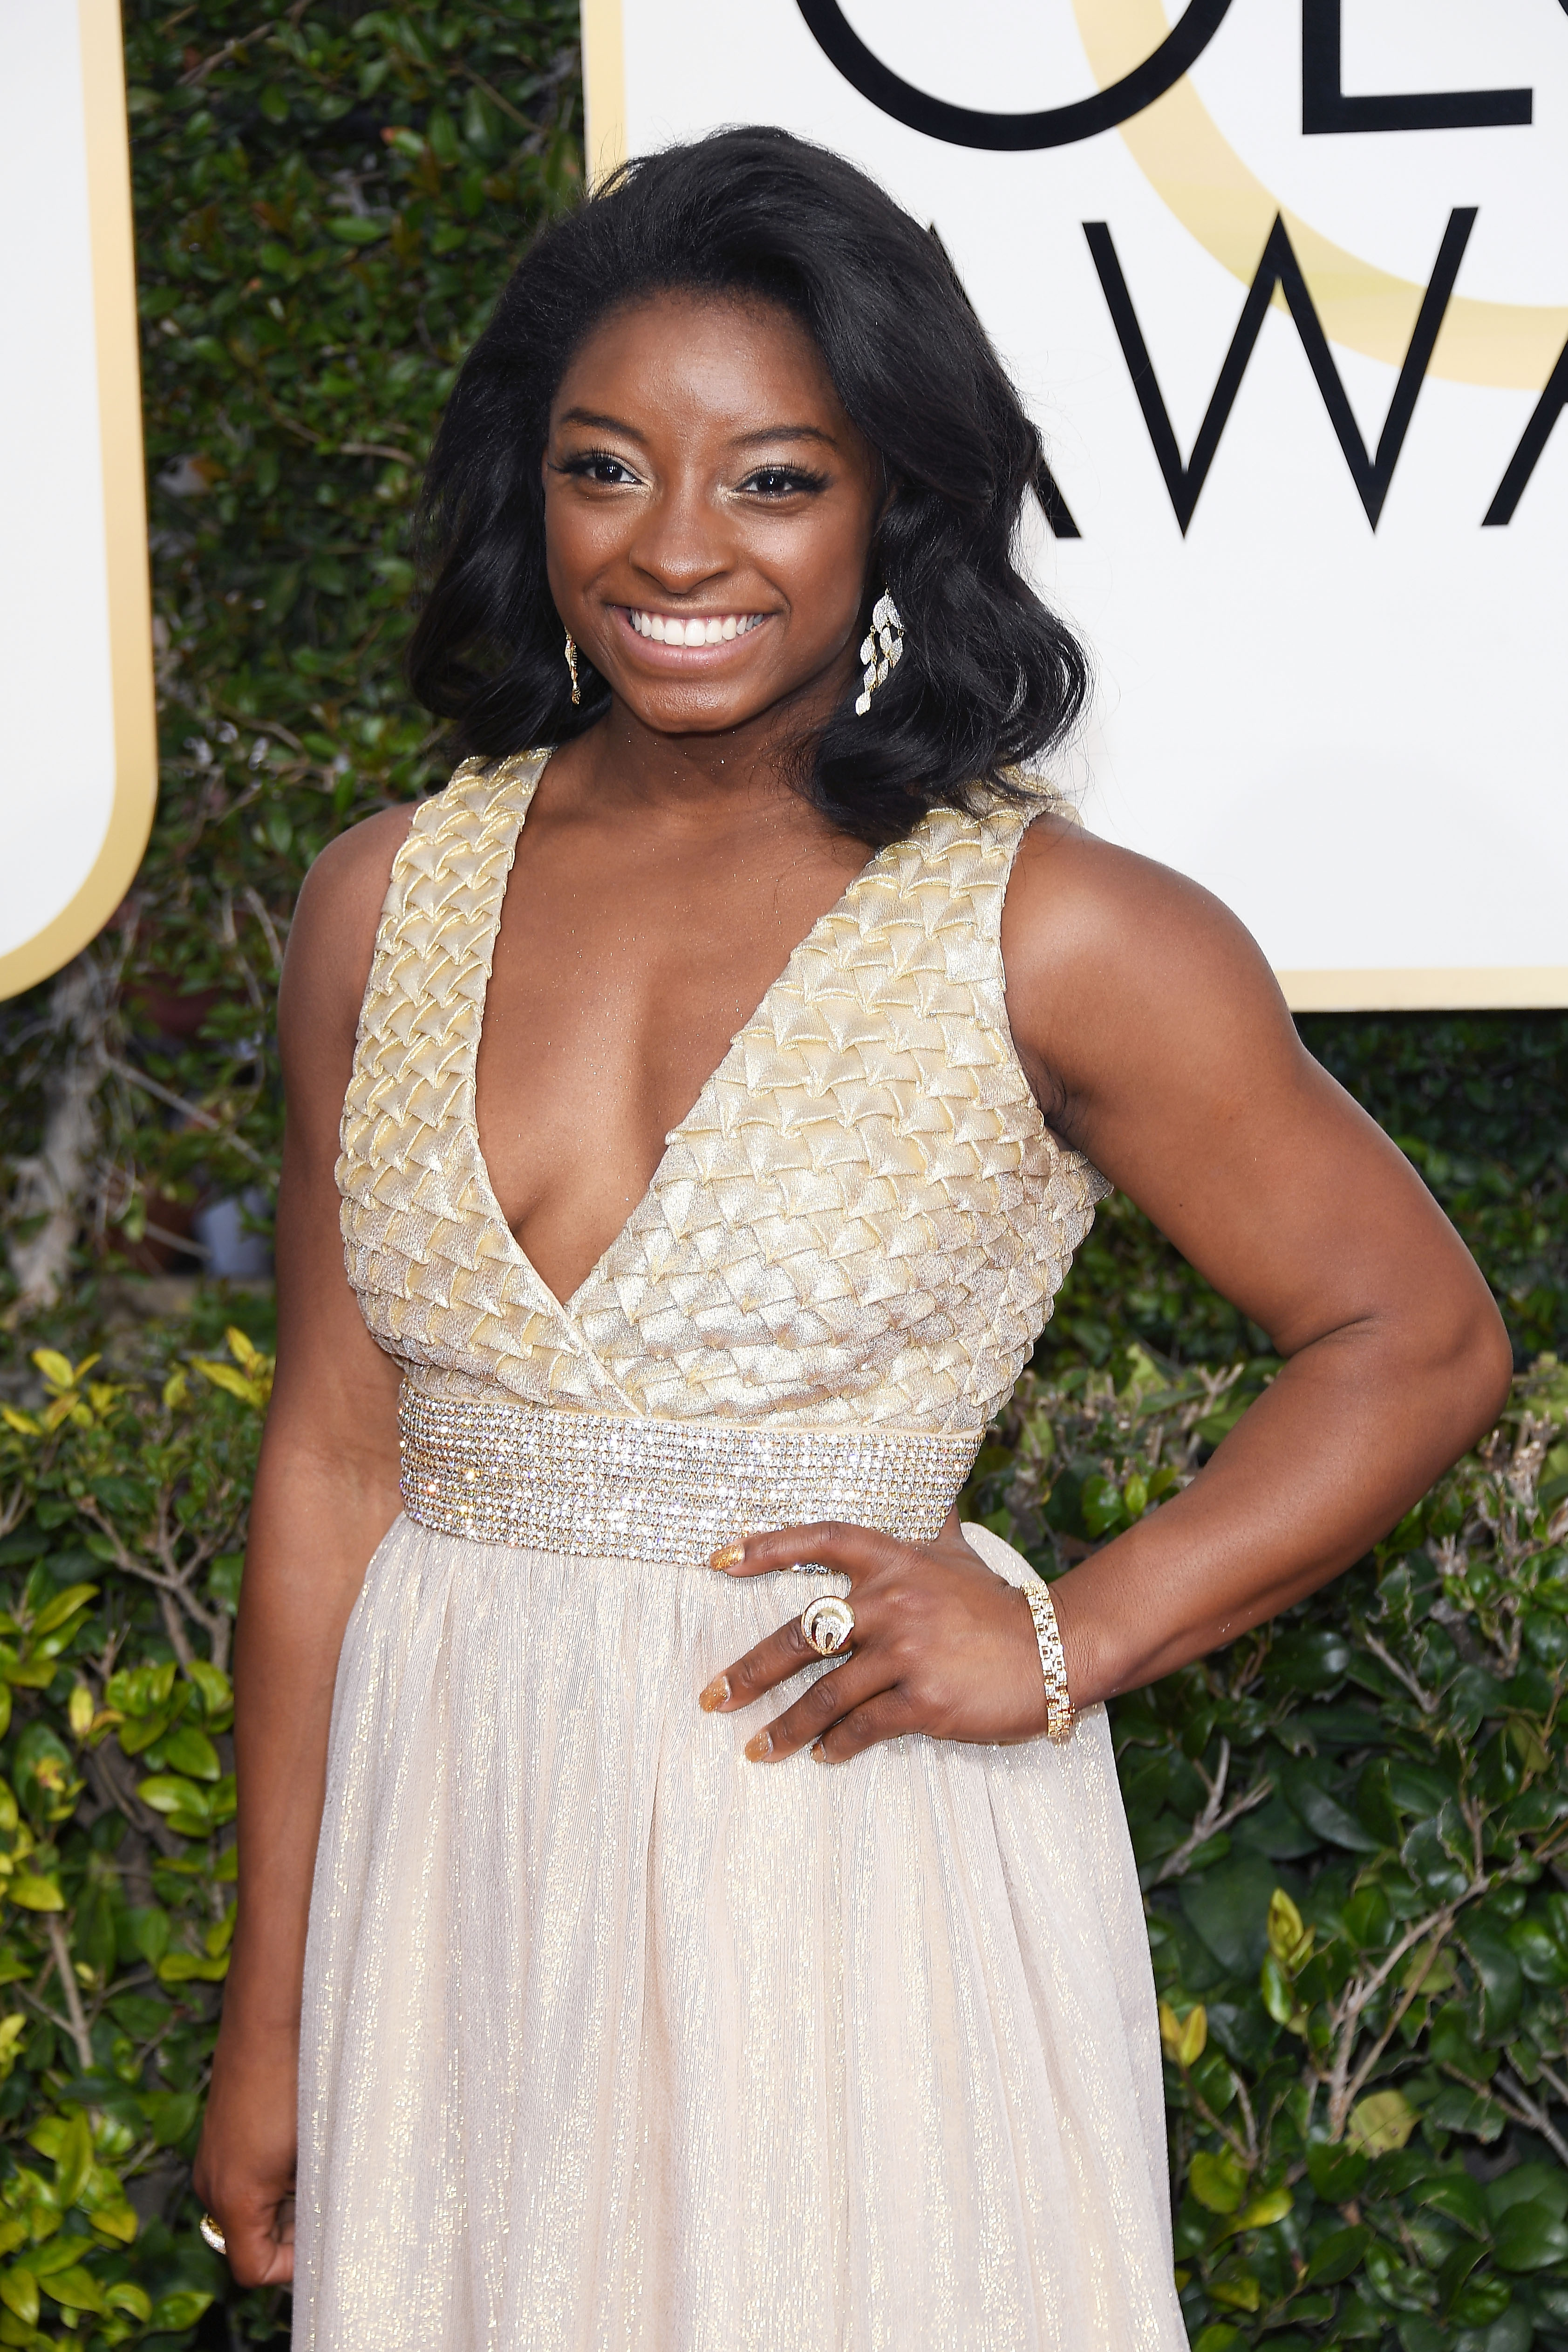 BEVERLY HILLS, CA - JANUARY 08: Simone Biles attends the 74th Annual Golden Globe Awards at The Beverly Hilton Hotel on January 8, 2017 in Beverly Hills, California. (Photo by Venturelli/WireImage)